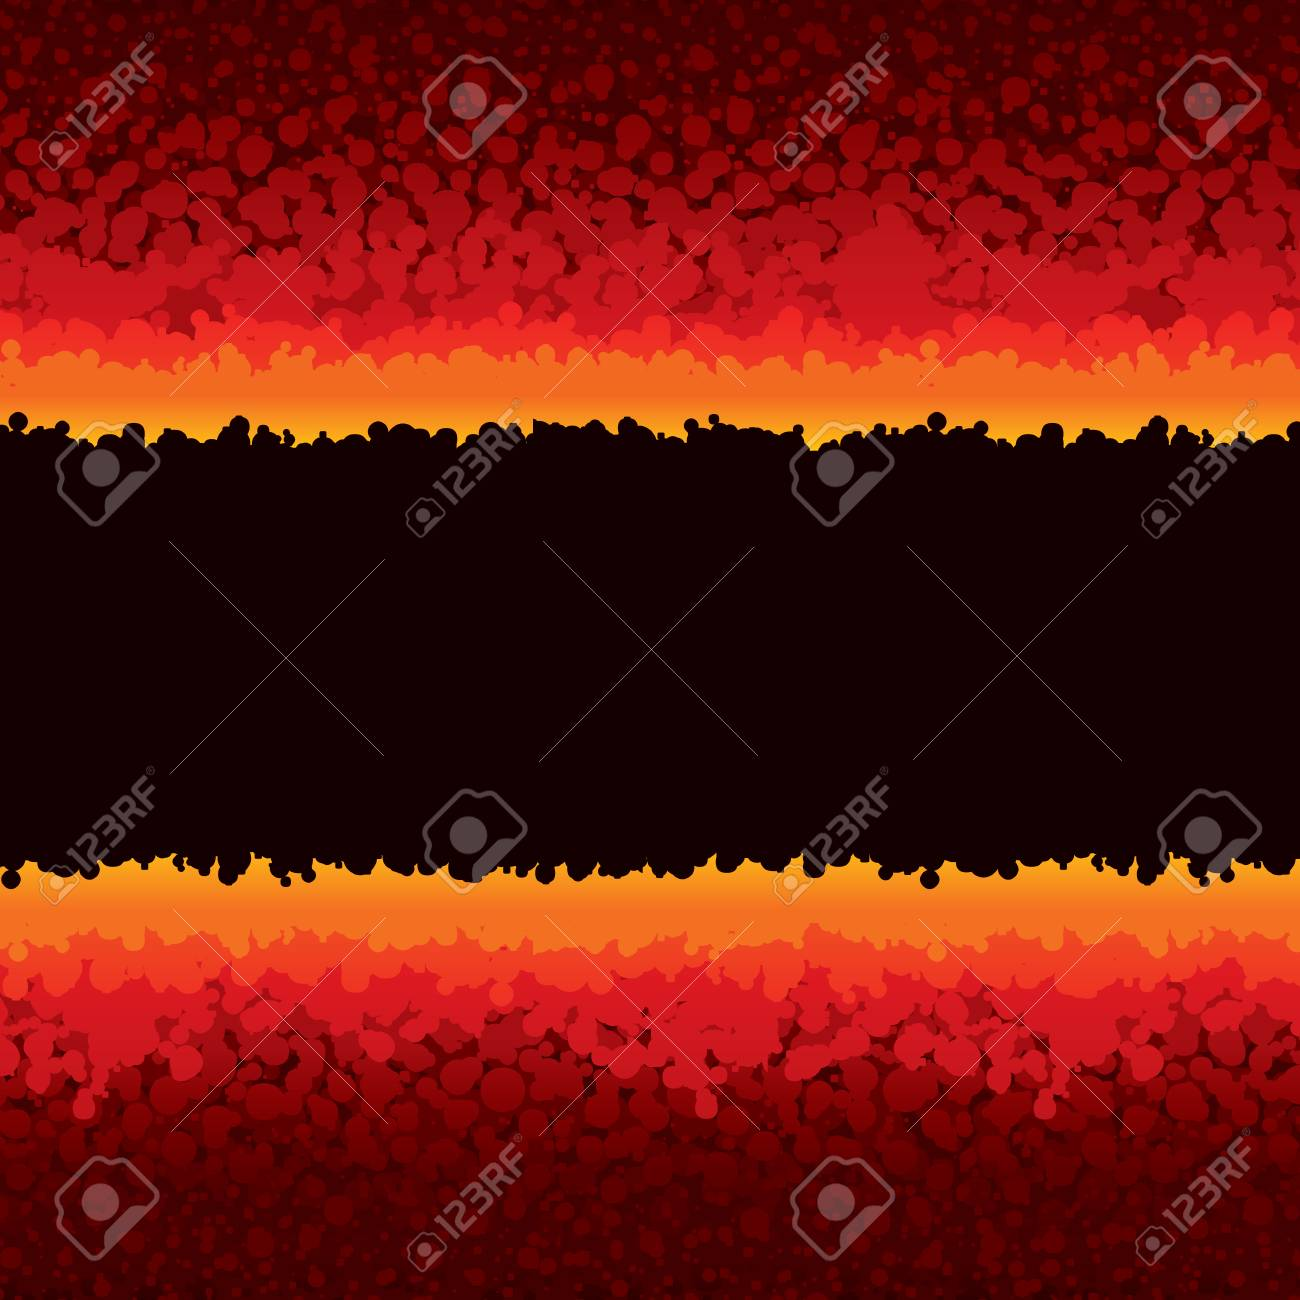 Bright Vector Background with a Free Space for Your Text. Stock Vector - 22914792